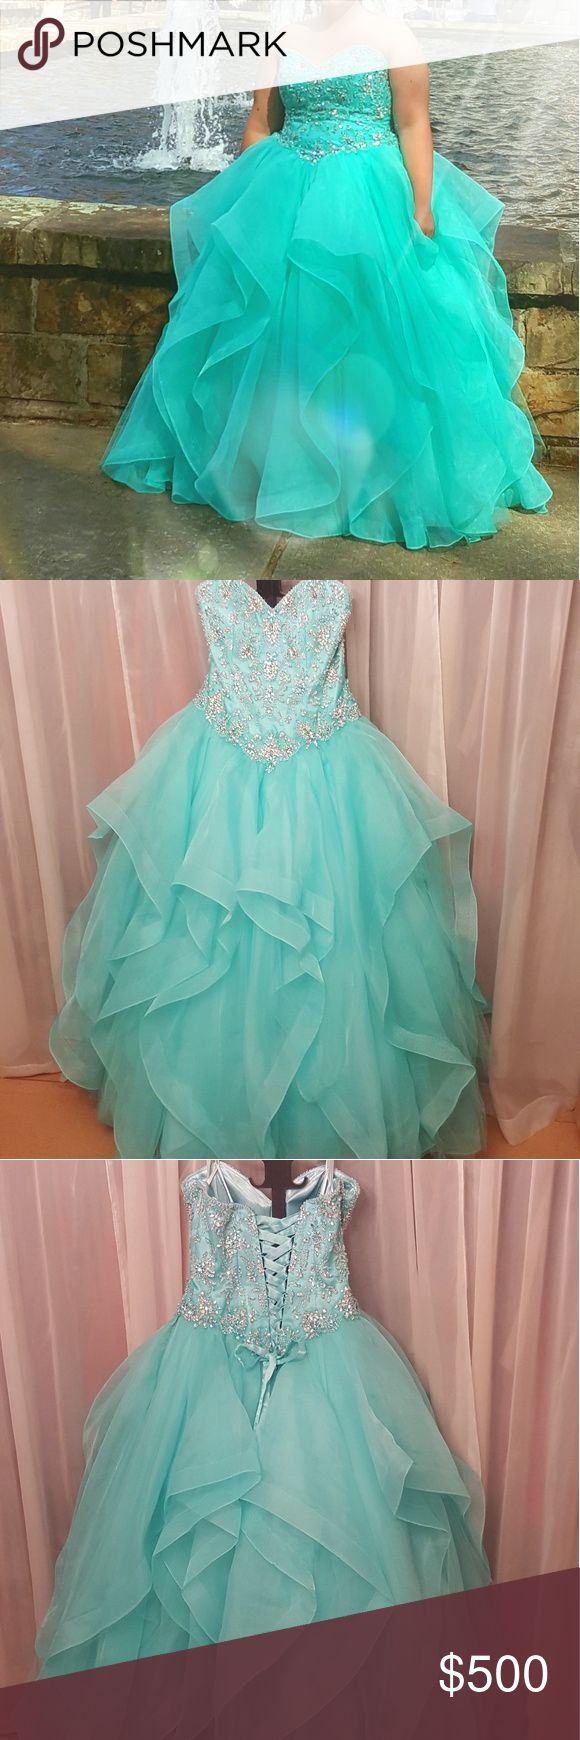 Gorgeous prom dress! Beautiful light teal color. Worn only for 3 hours at the most! Excellent condition! Fully lined with layers of tulle. Lots of beadwork on front and back of bodice! Can make smaller (14) or larger (18) with adjustable corset in back! Paid 700$ for it brand new! Asking 500$ obo! Dresses Prom